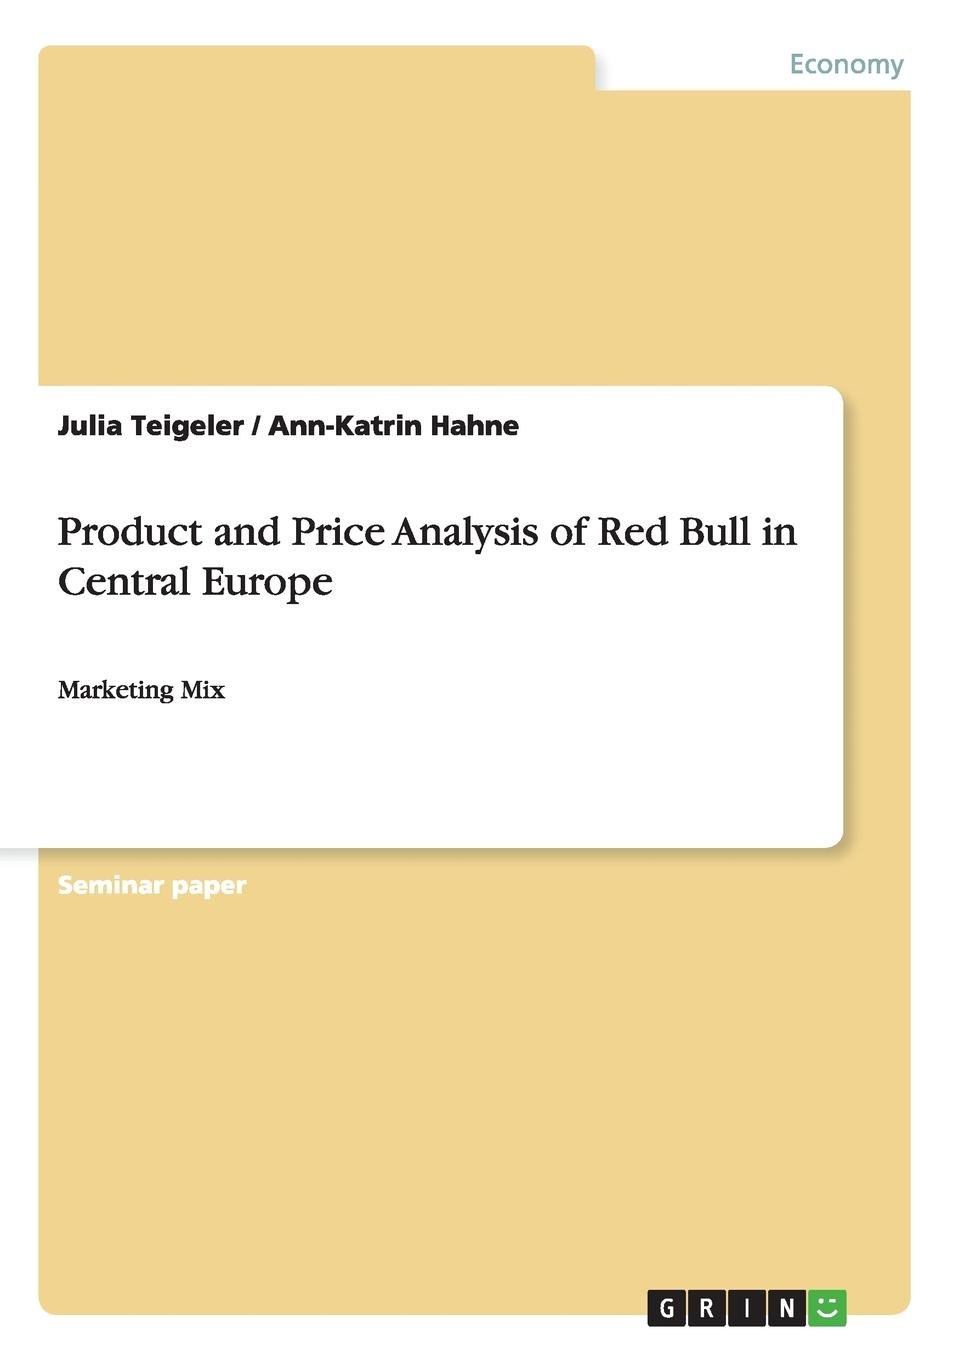 Julia Teigeler, Ann-Katrin Hahne Product and Price Analysis of Red Bull in Central Europe halil kiymaz market microstructure in emerging and developed markets price discovery information flows and transaction costs